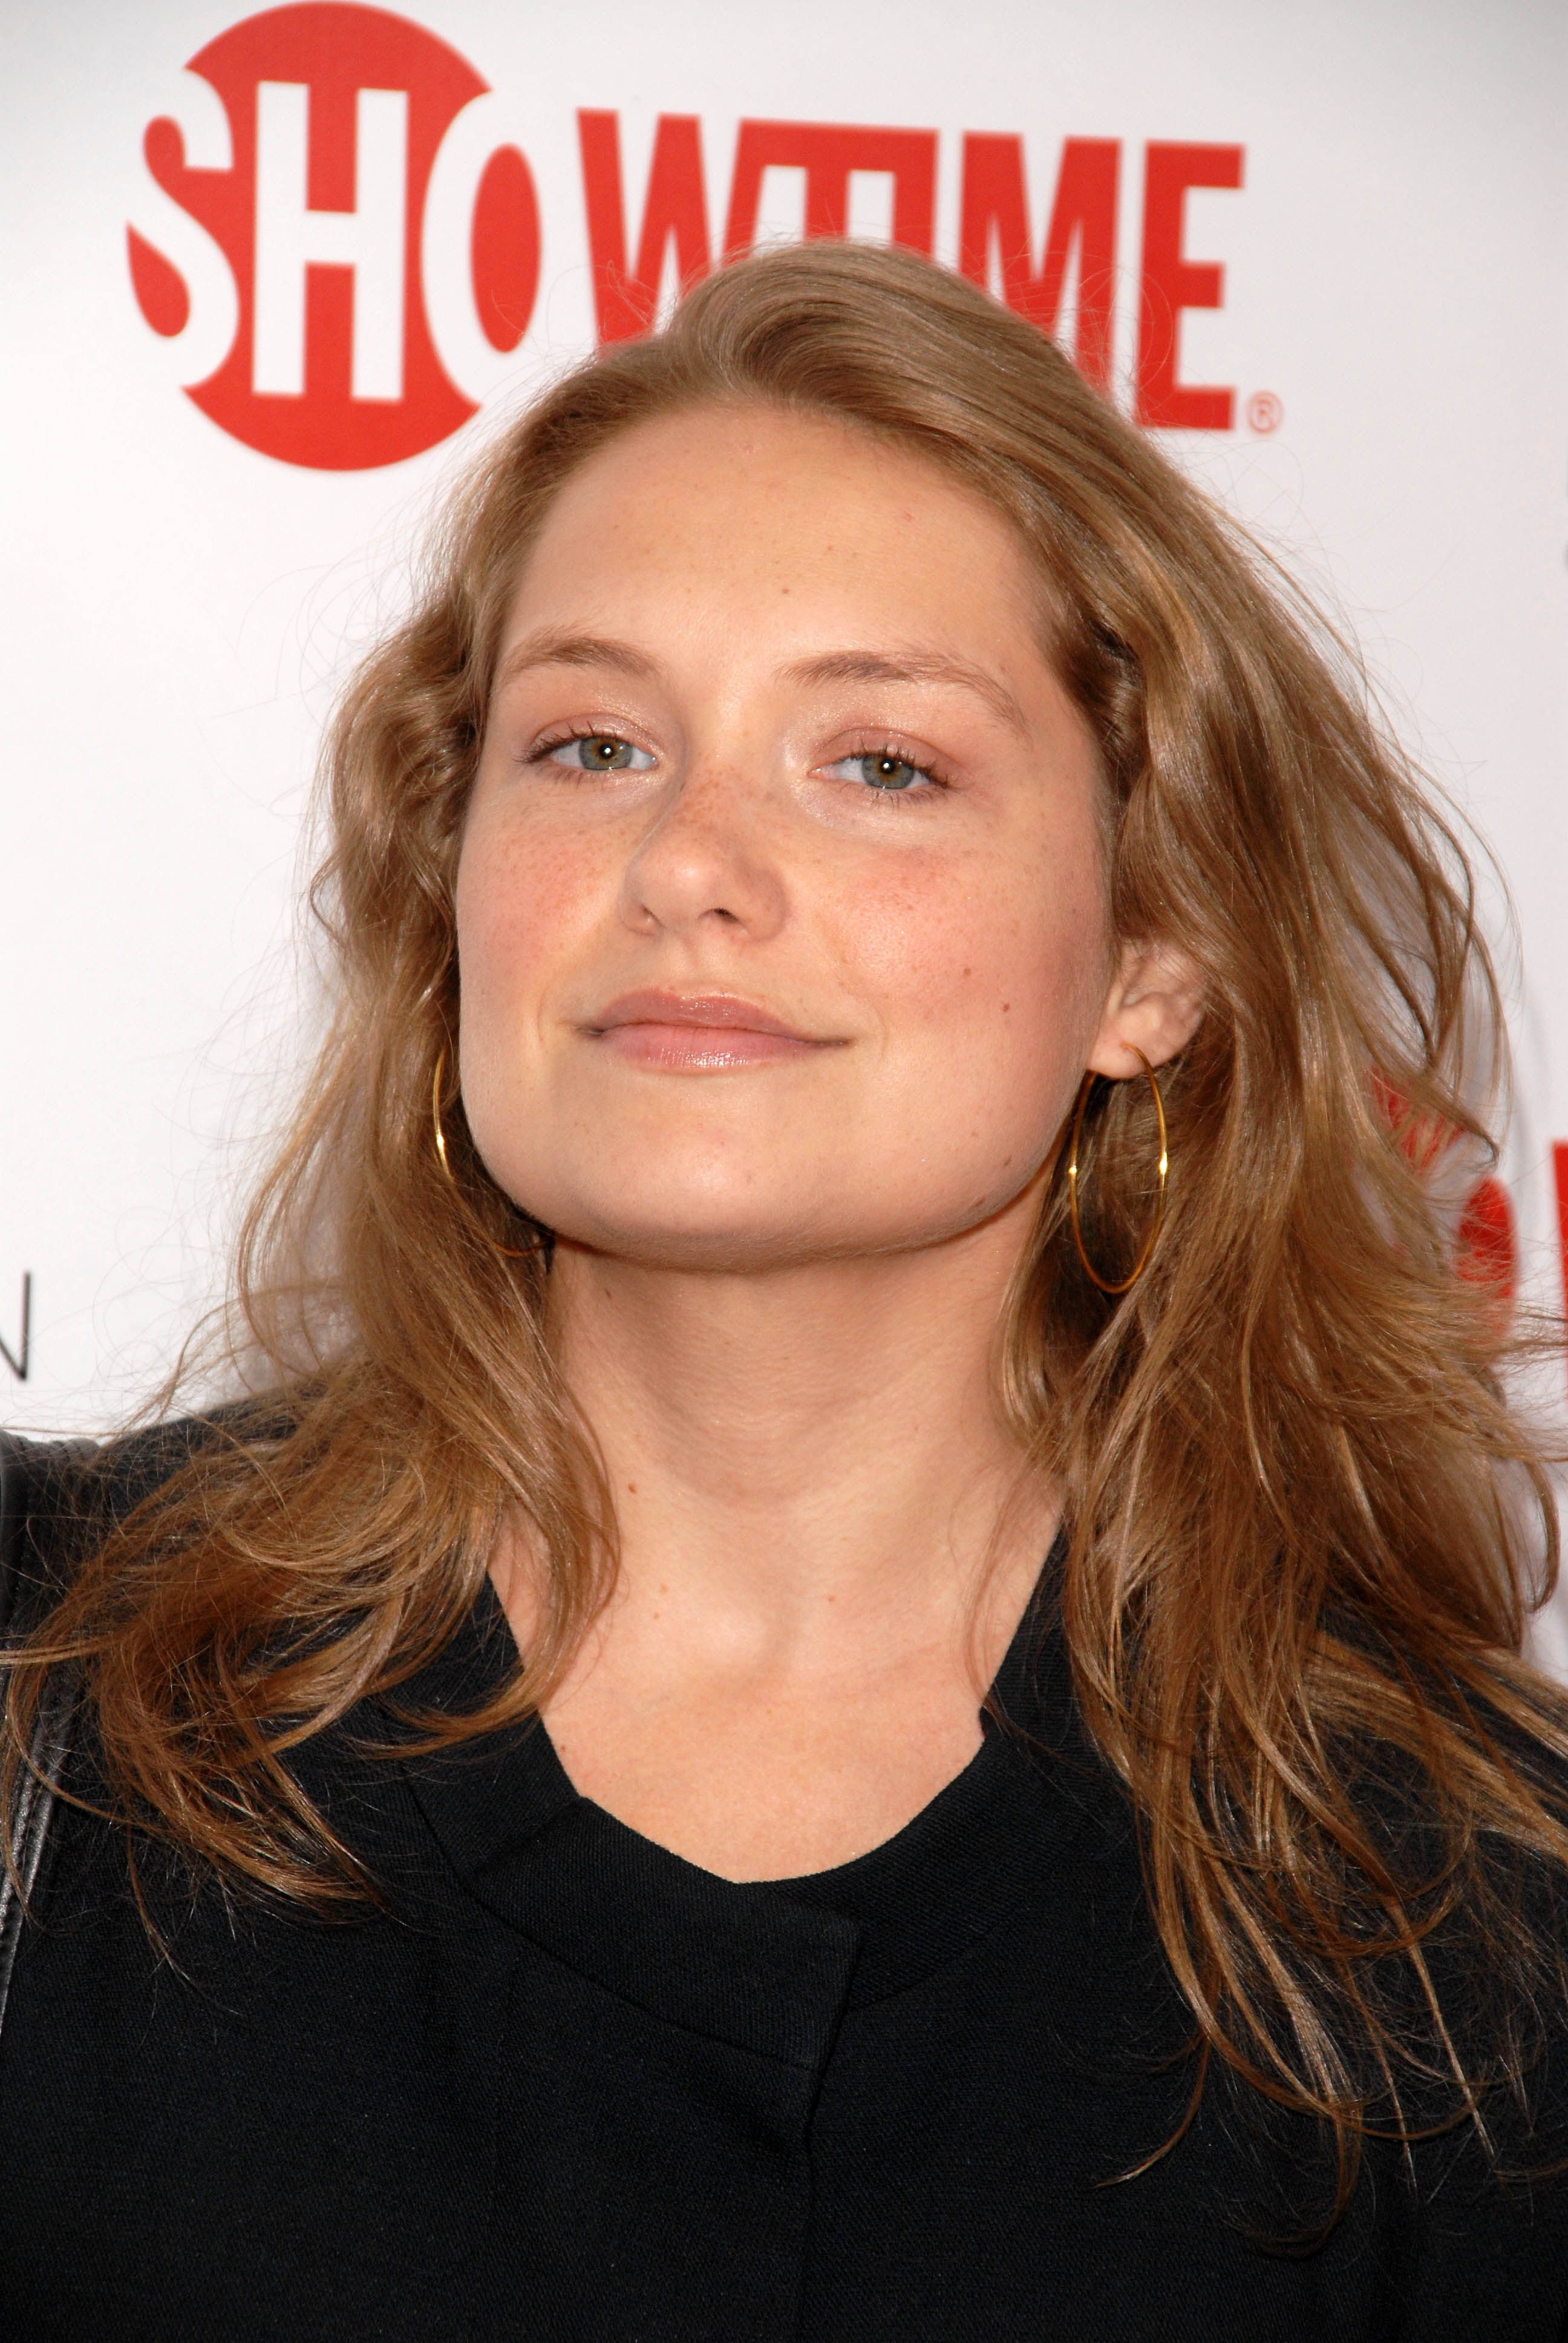 Merritt Wever Nude Photos 5